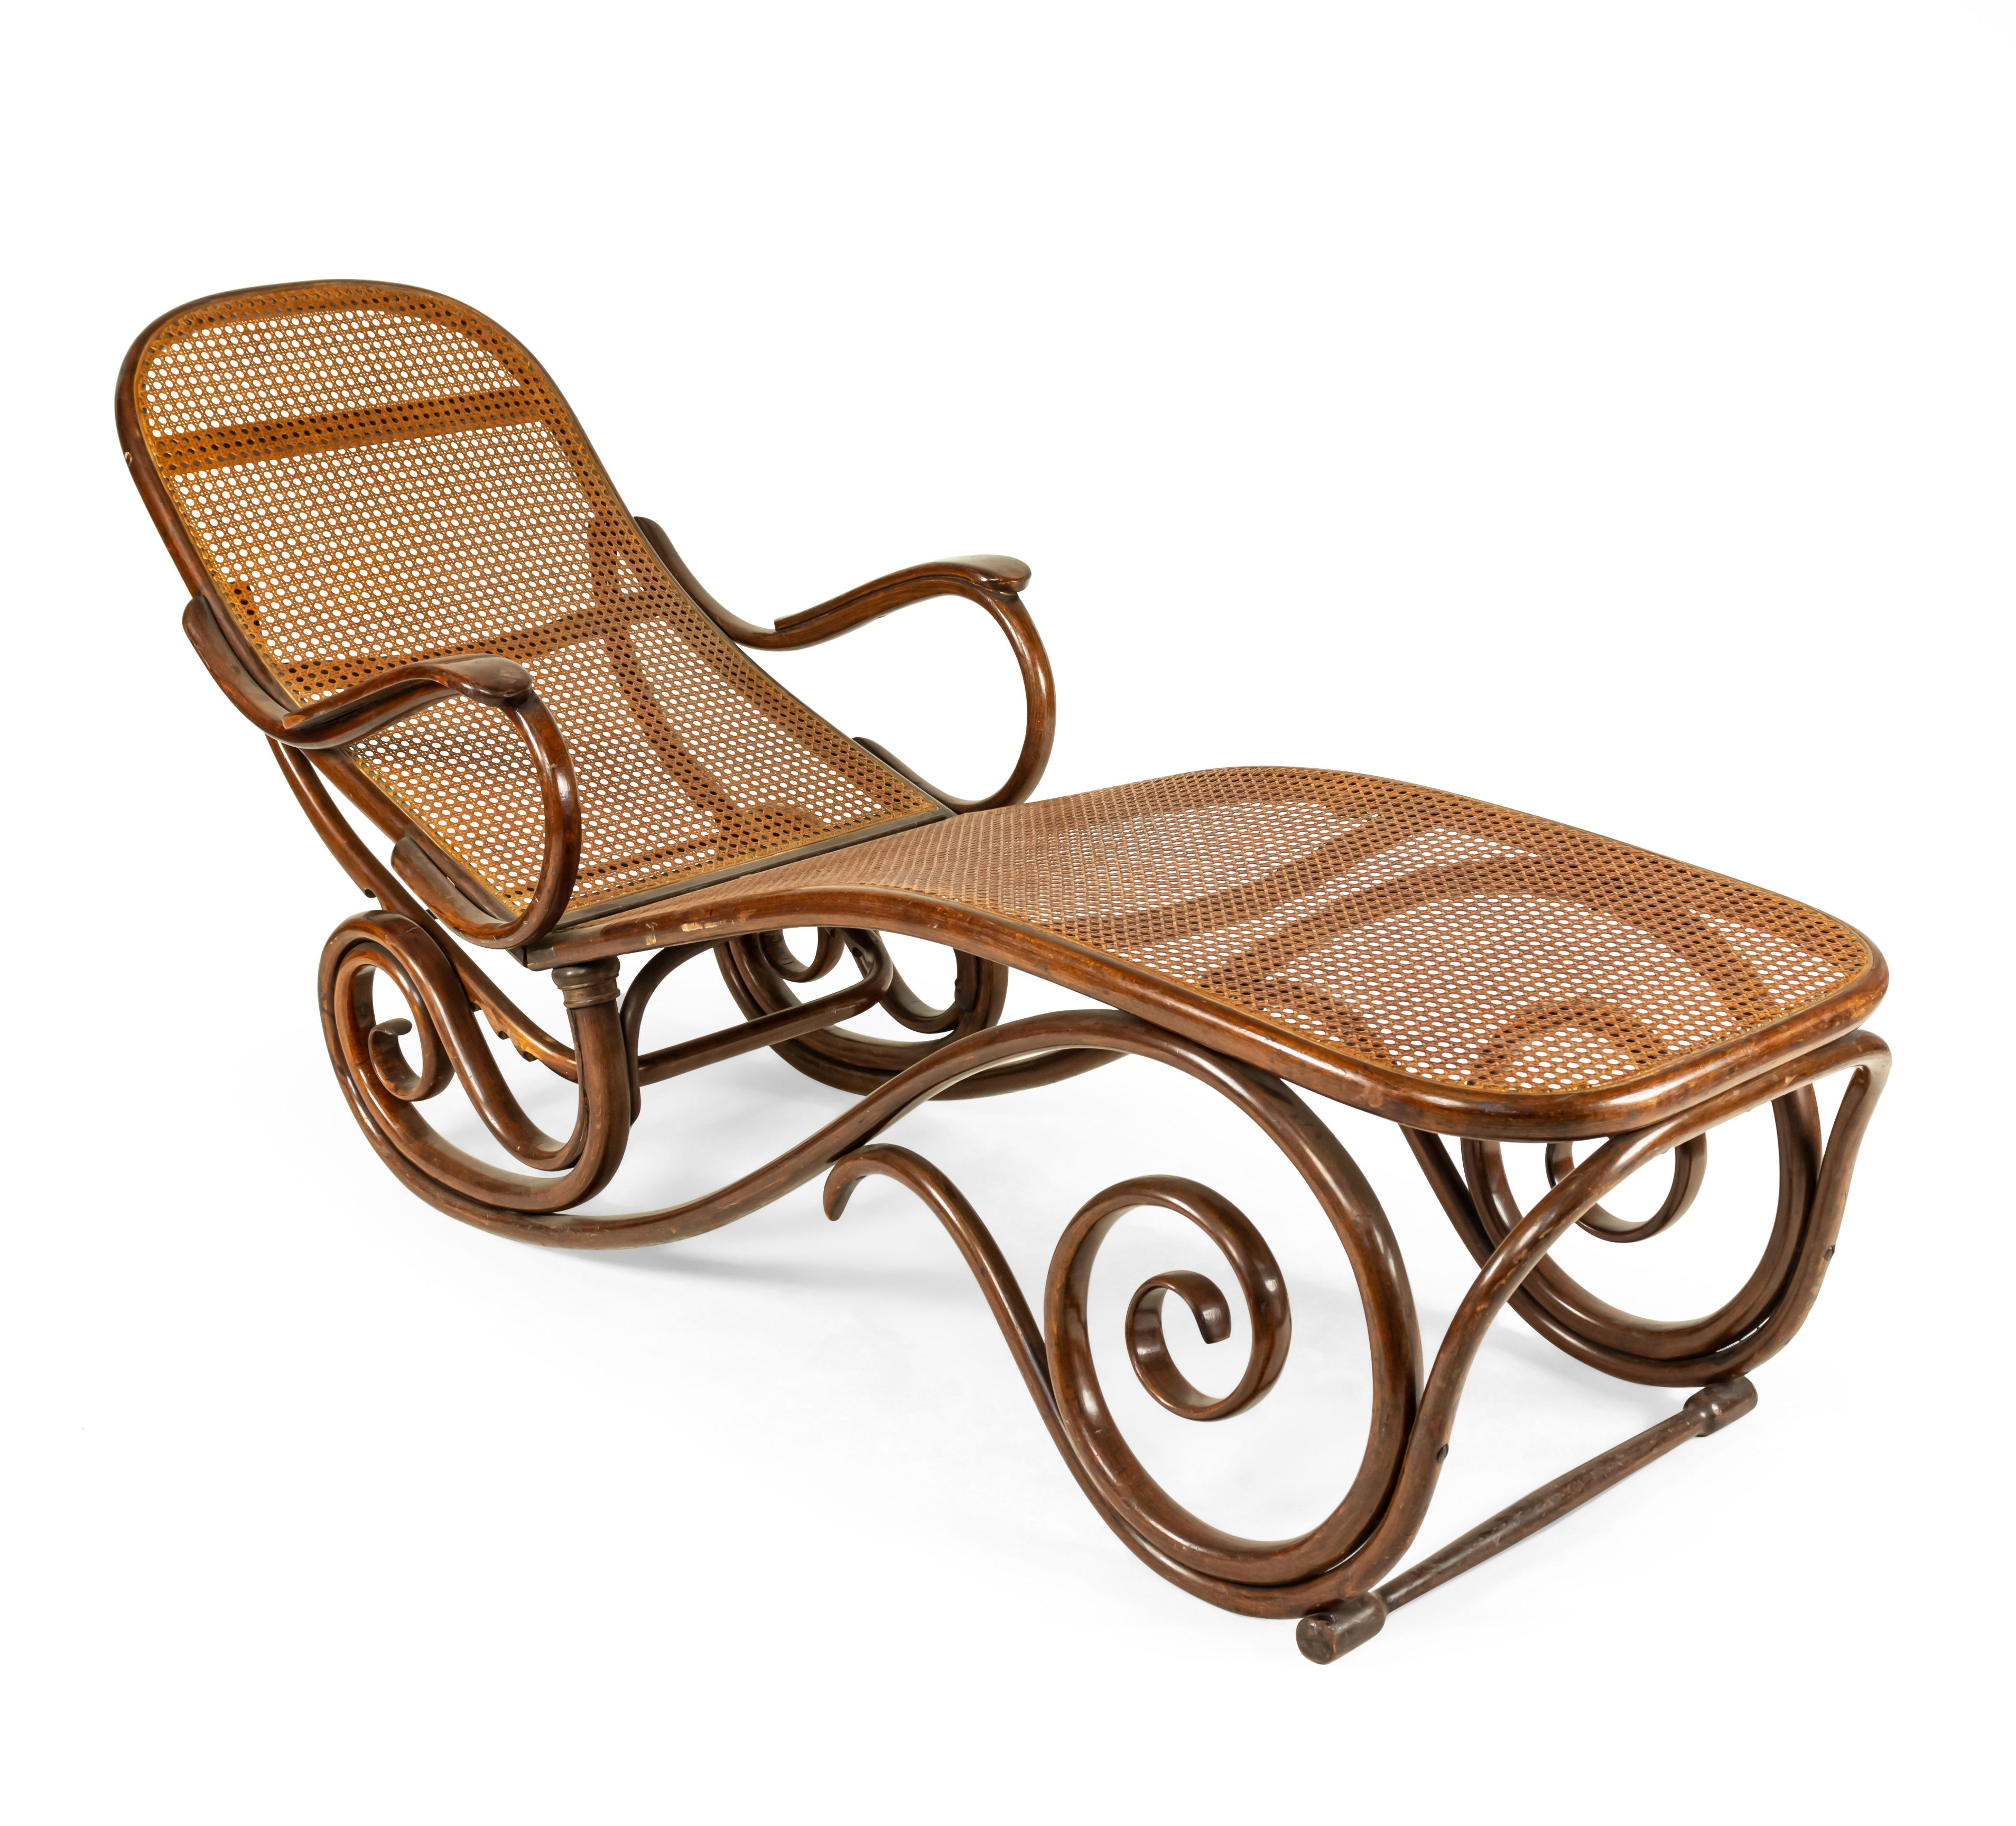 Bentwood thonet Style scroll design chaise